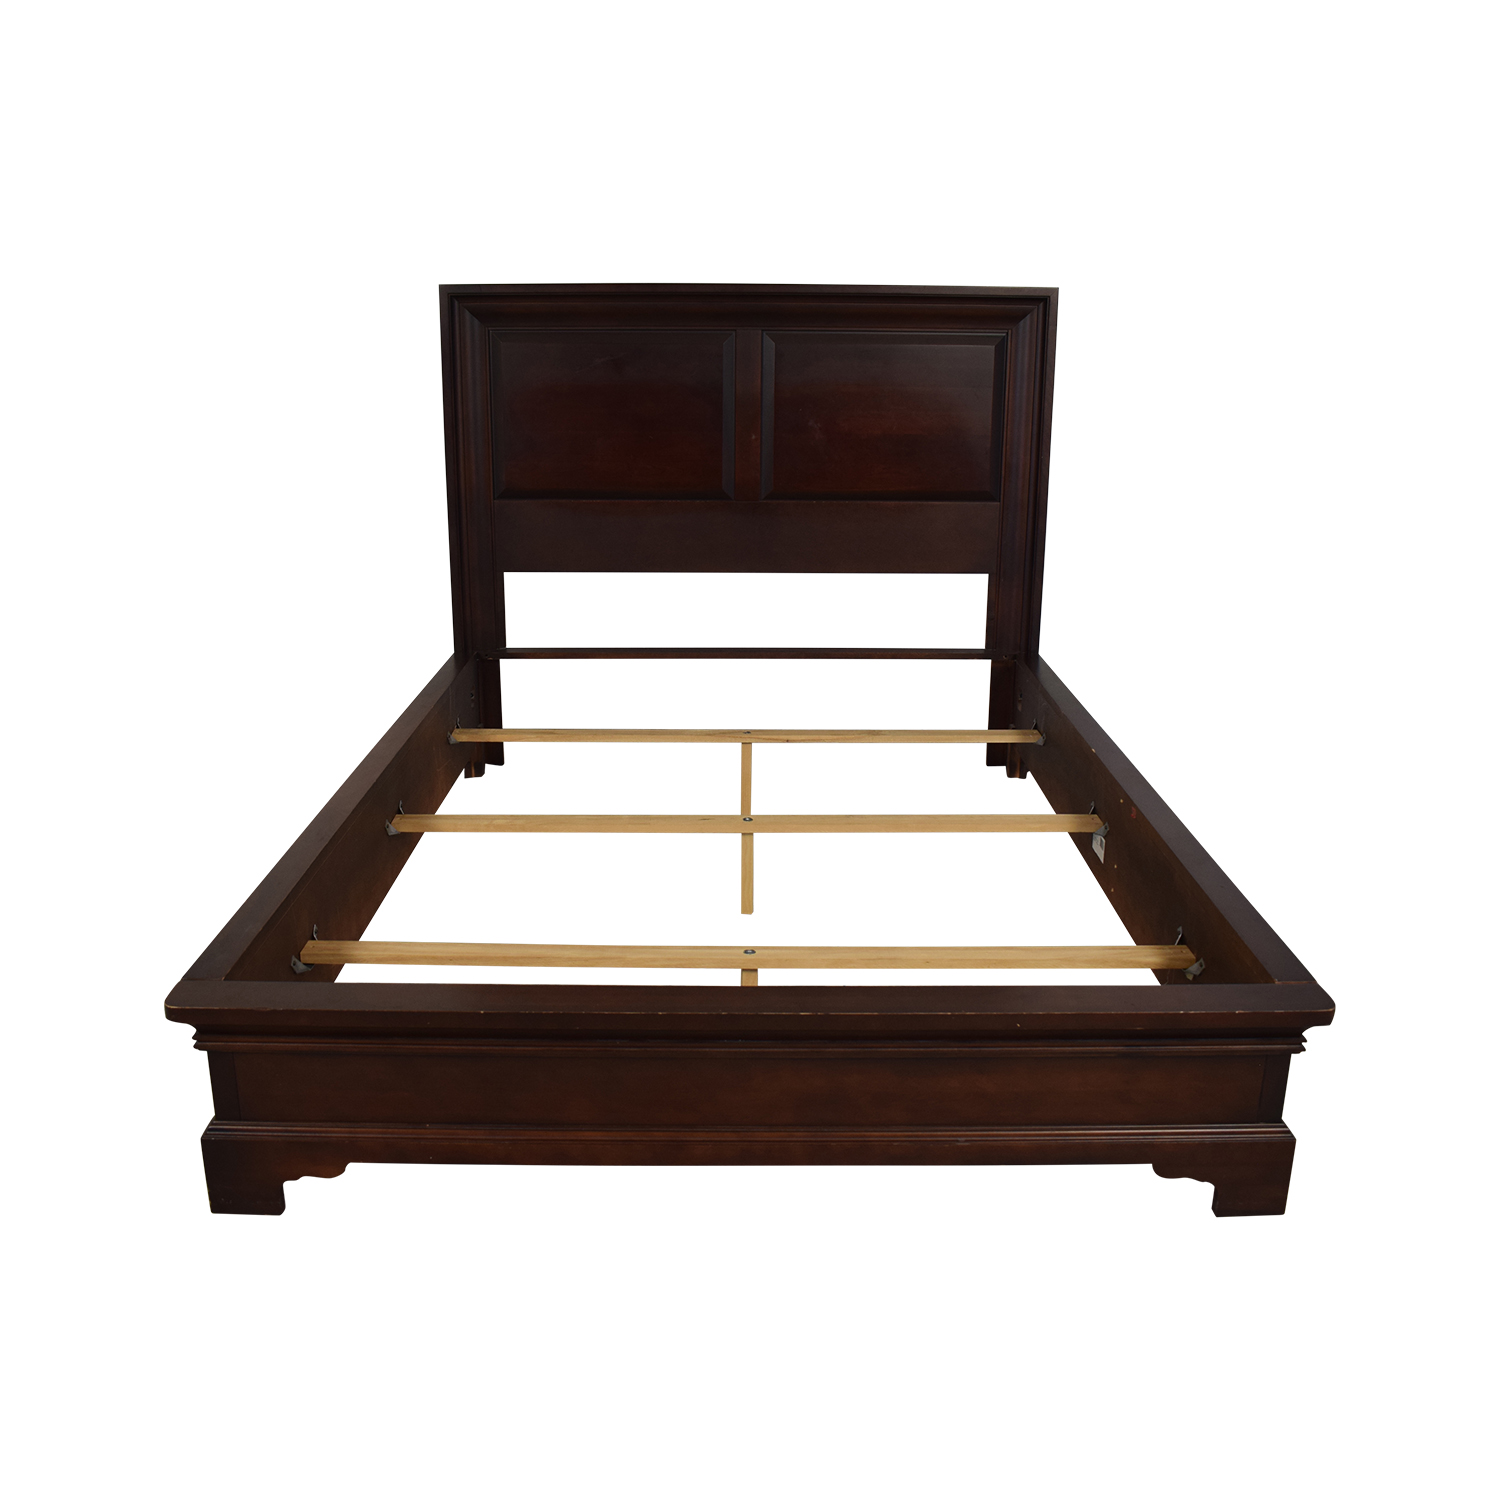 Shermag Shermag Queen Bed Frame coupon